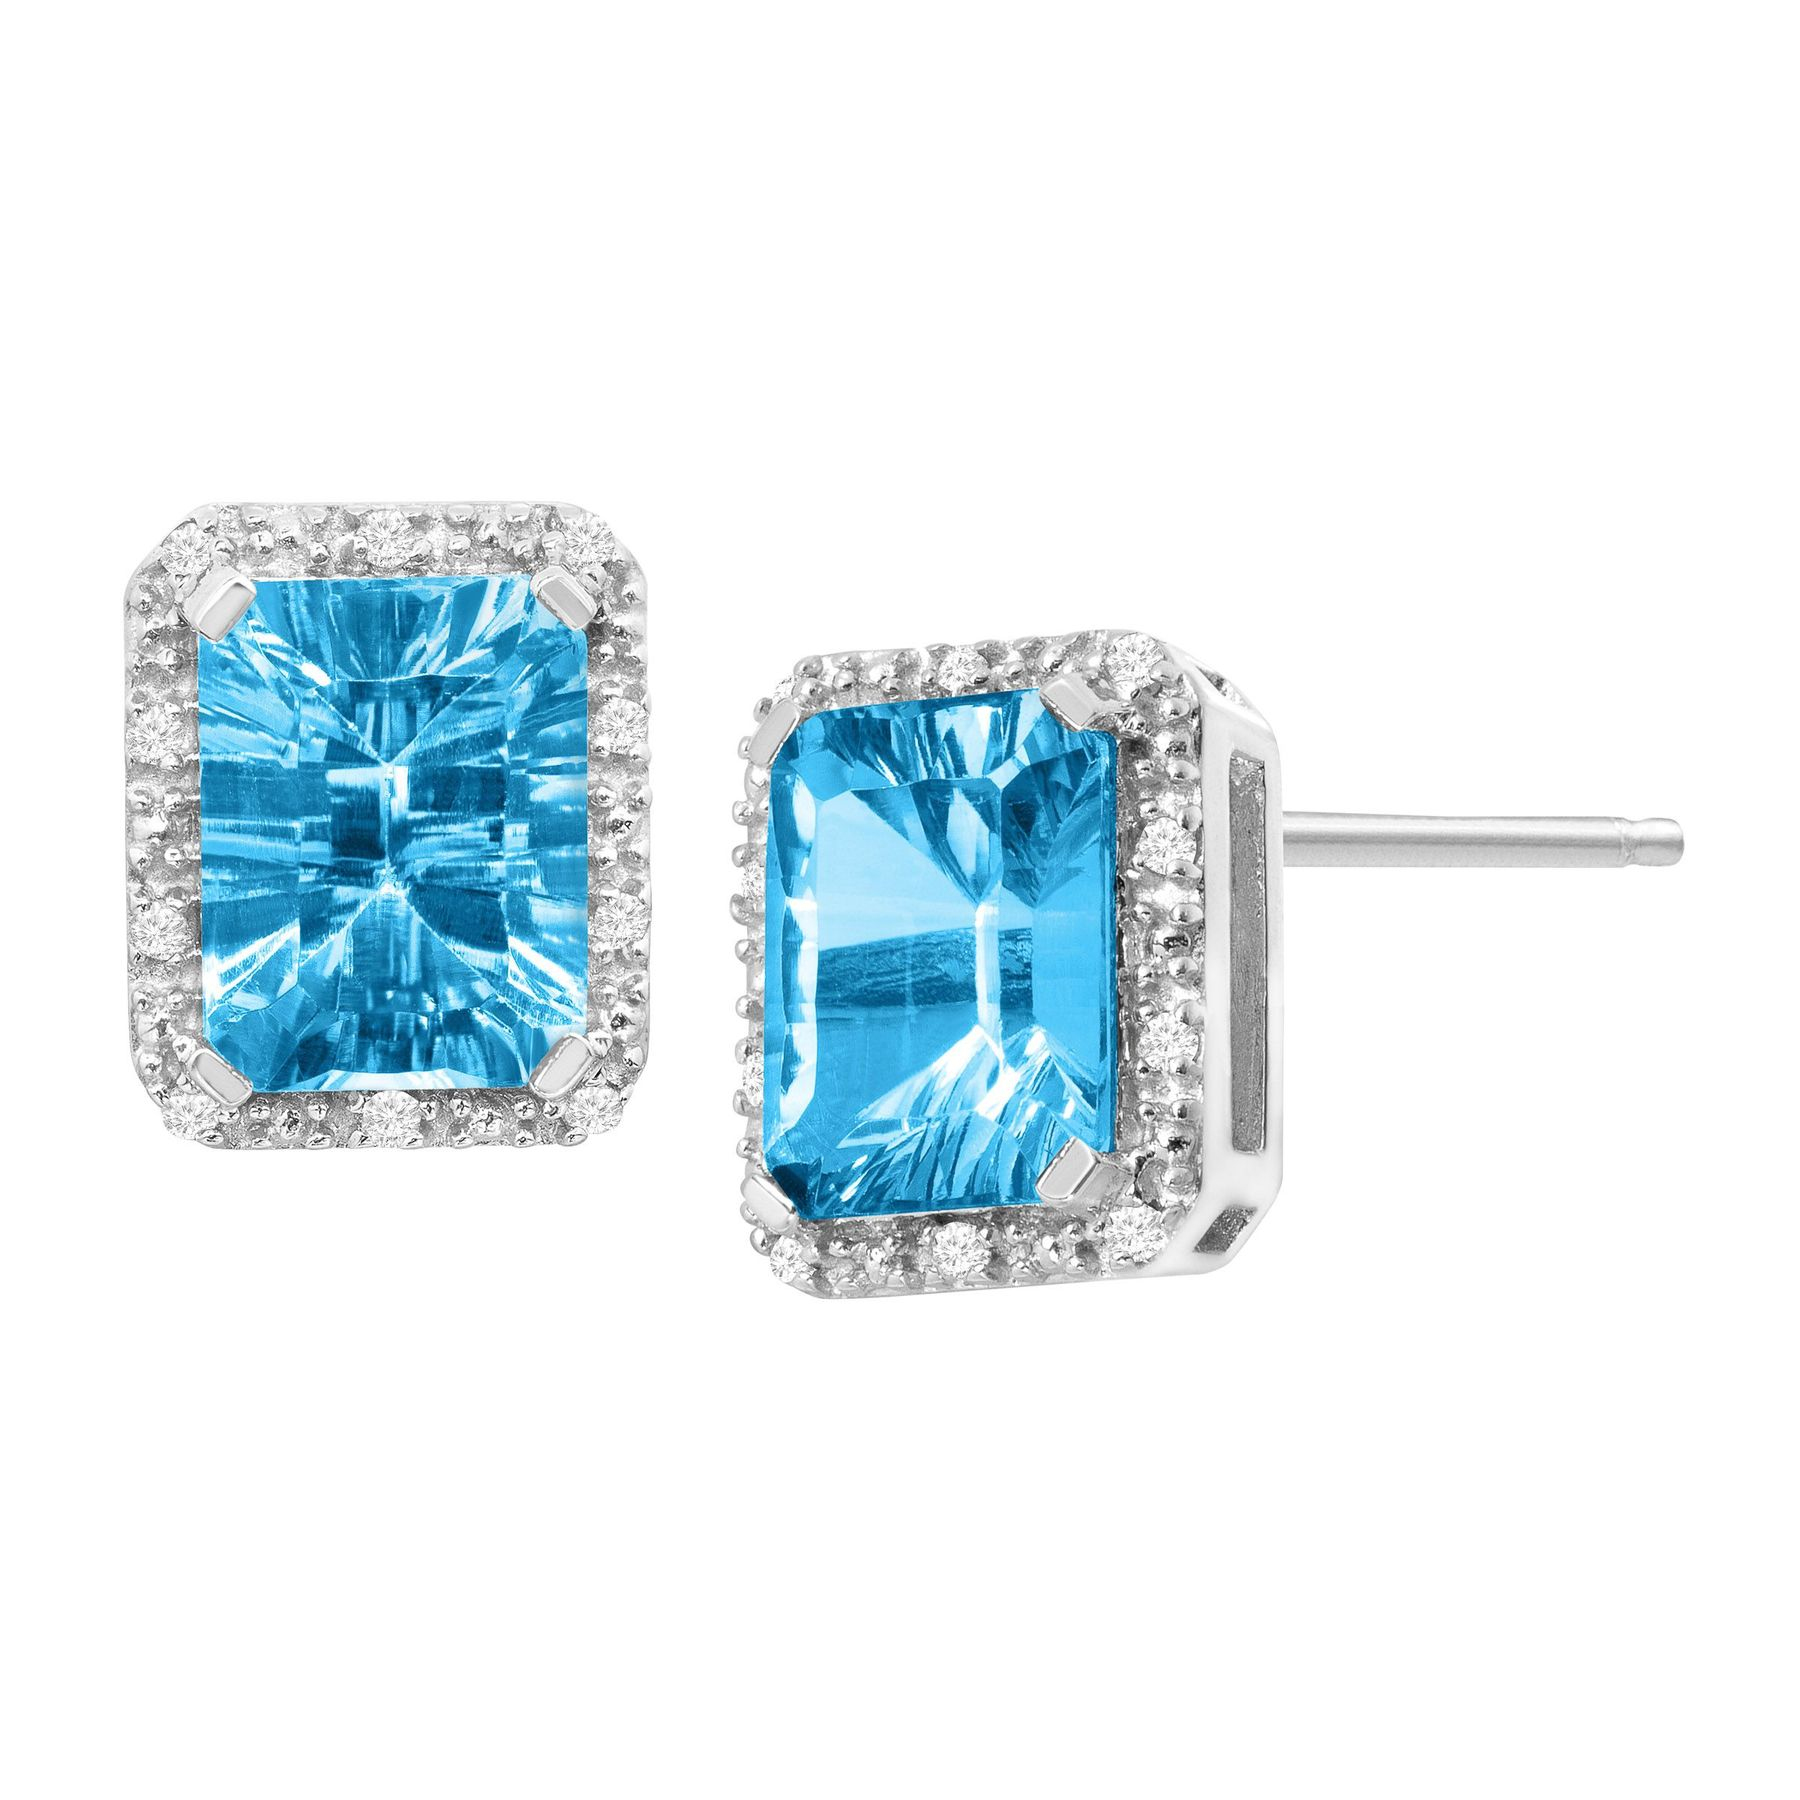 jewels blue jewelry sterling fine jewelrypalace stud silve product genuine topaz earrings women katha natural outstanding new silver